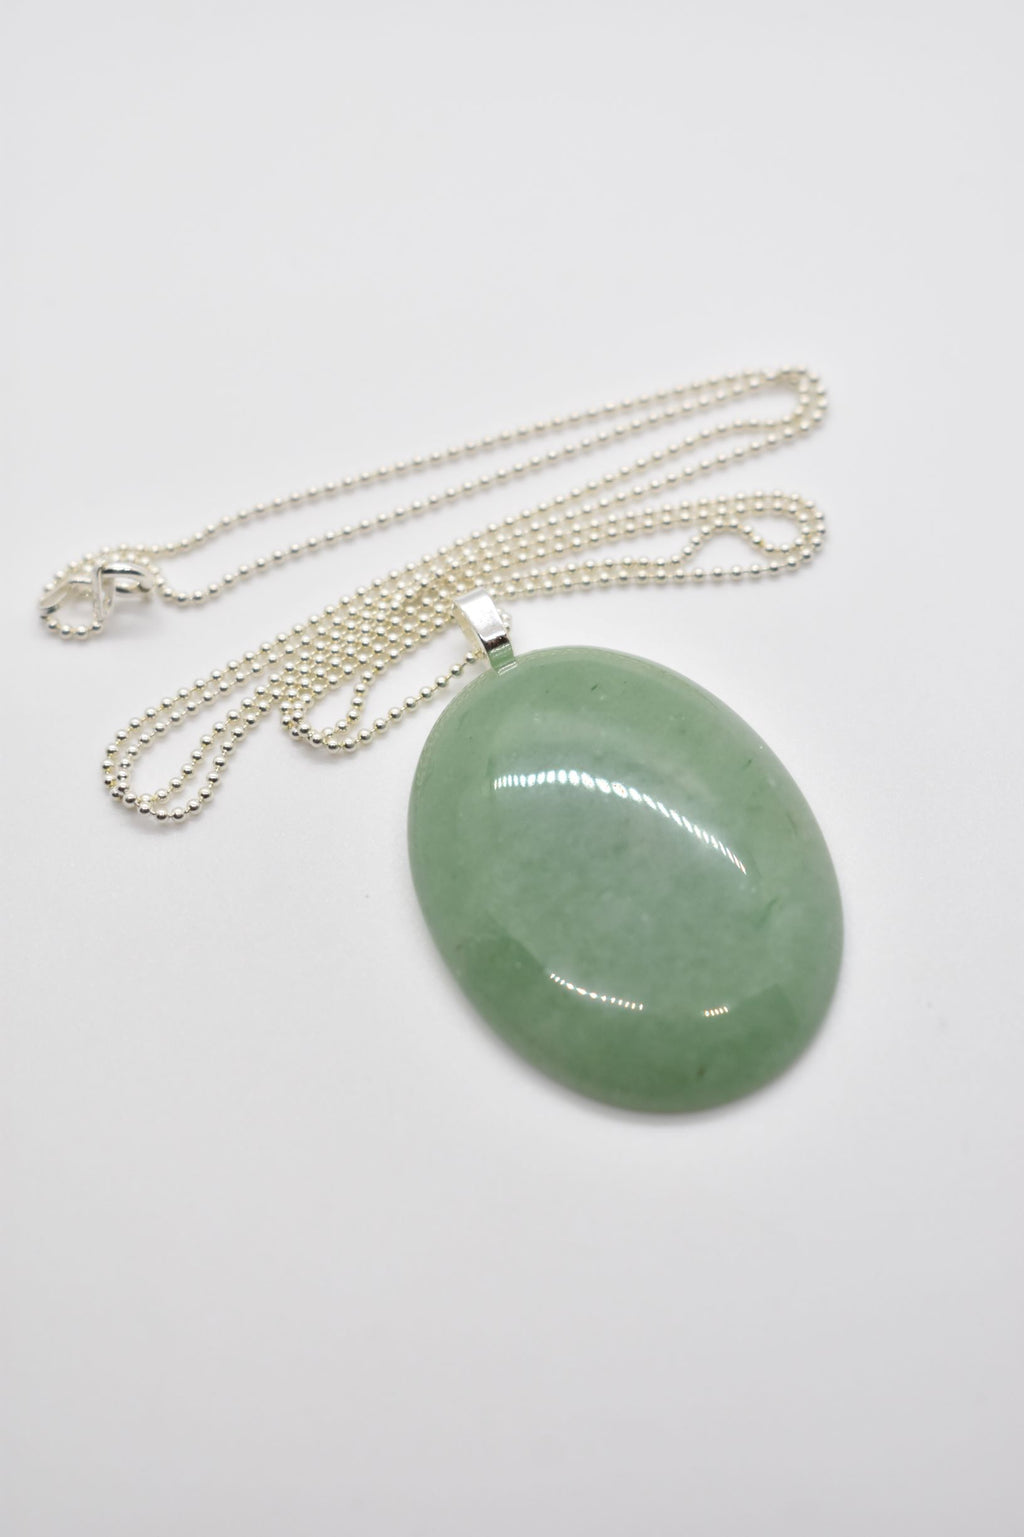 Green Aventurine Oval Pendant Necklace